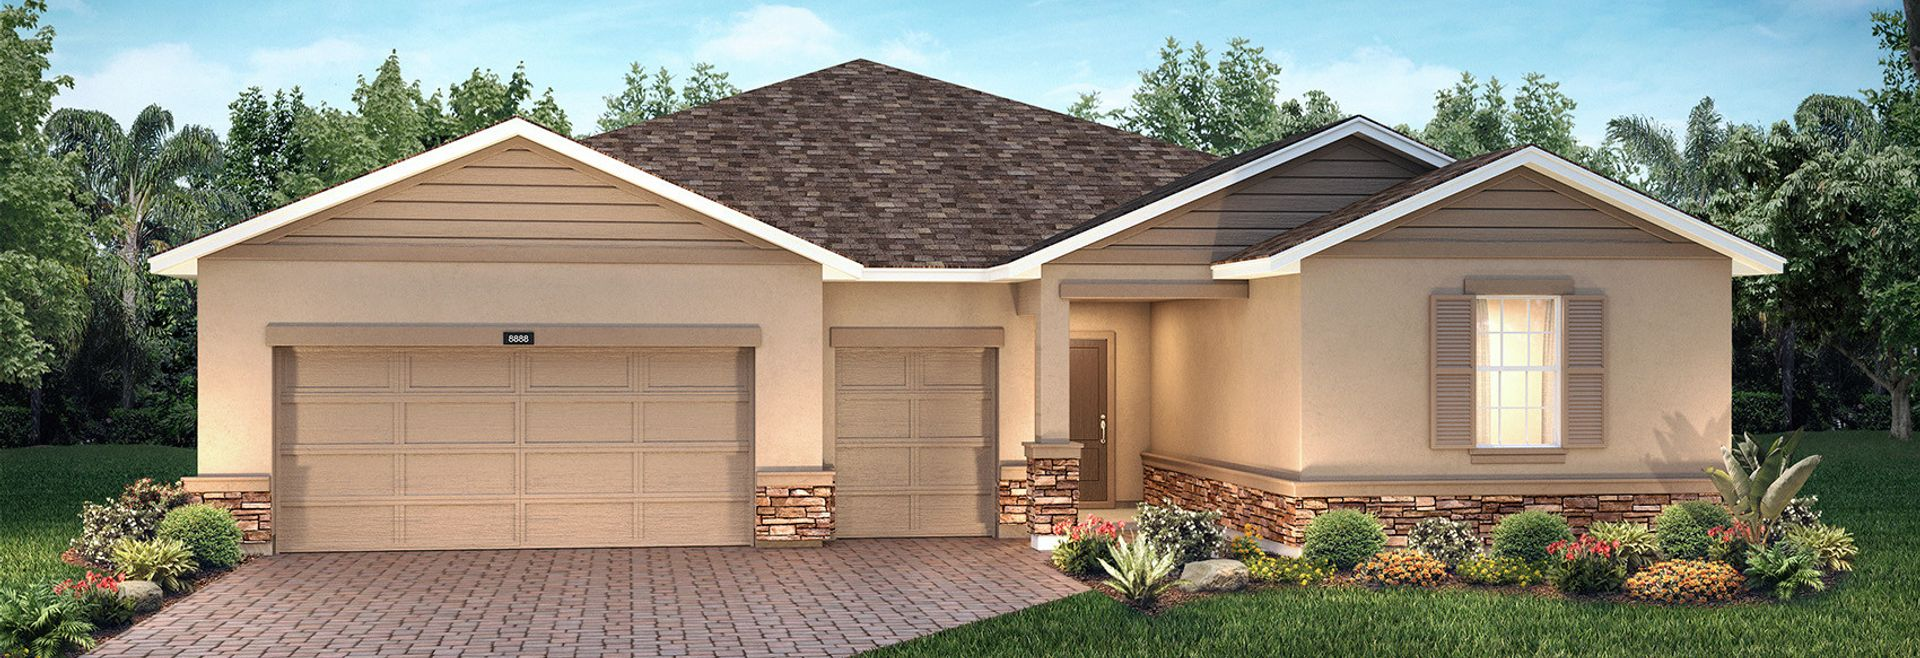 Trilogy at Ocala Preserve Plan Liberty